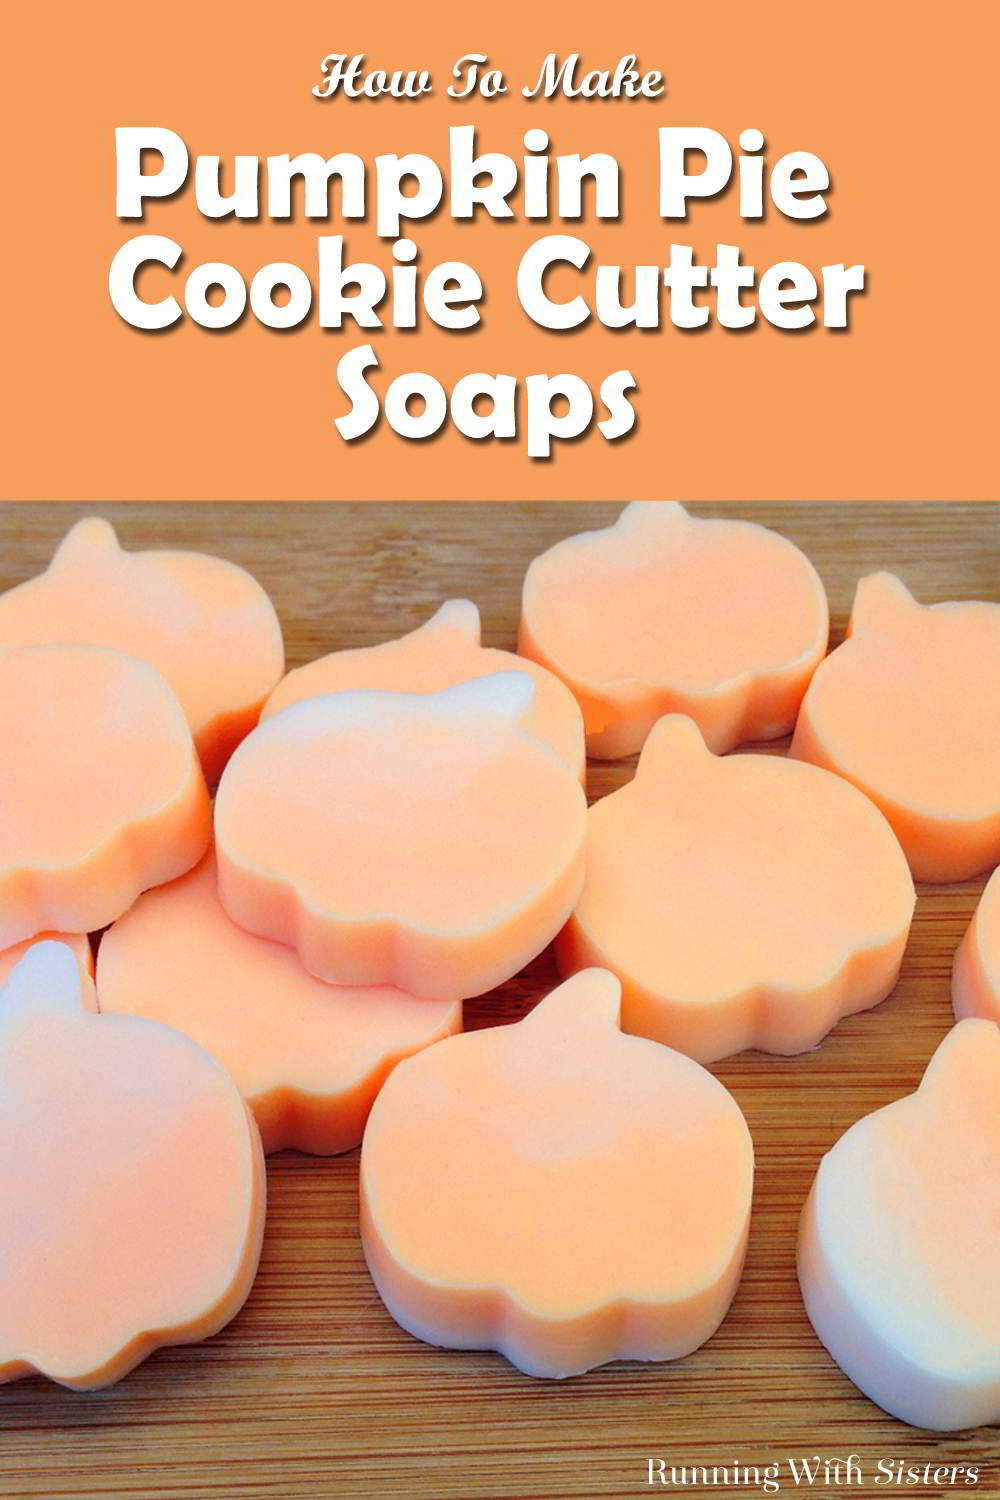 These Pumpkin Cookie Cutter Soaps are so fast, fun, and easy to make. Melt the soap base in the microwave and use a cookie cutter to cut out the soaps!